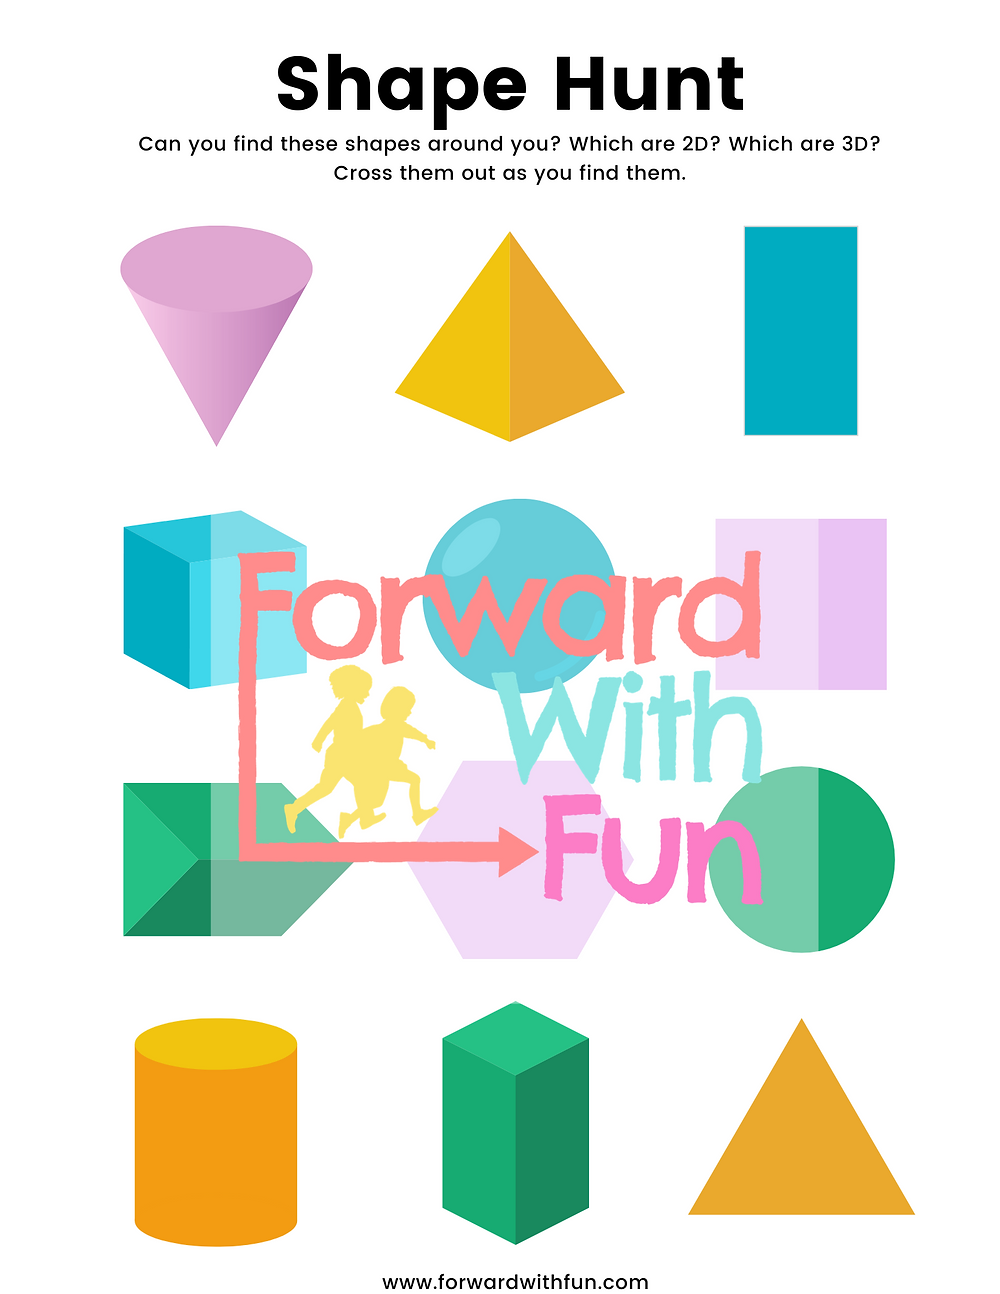 Downloadable shape hunt activity showing 3d and 2d shapes to find